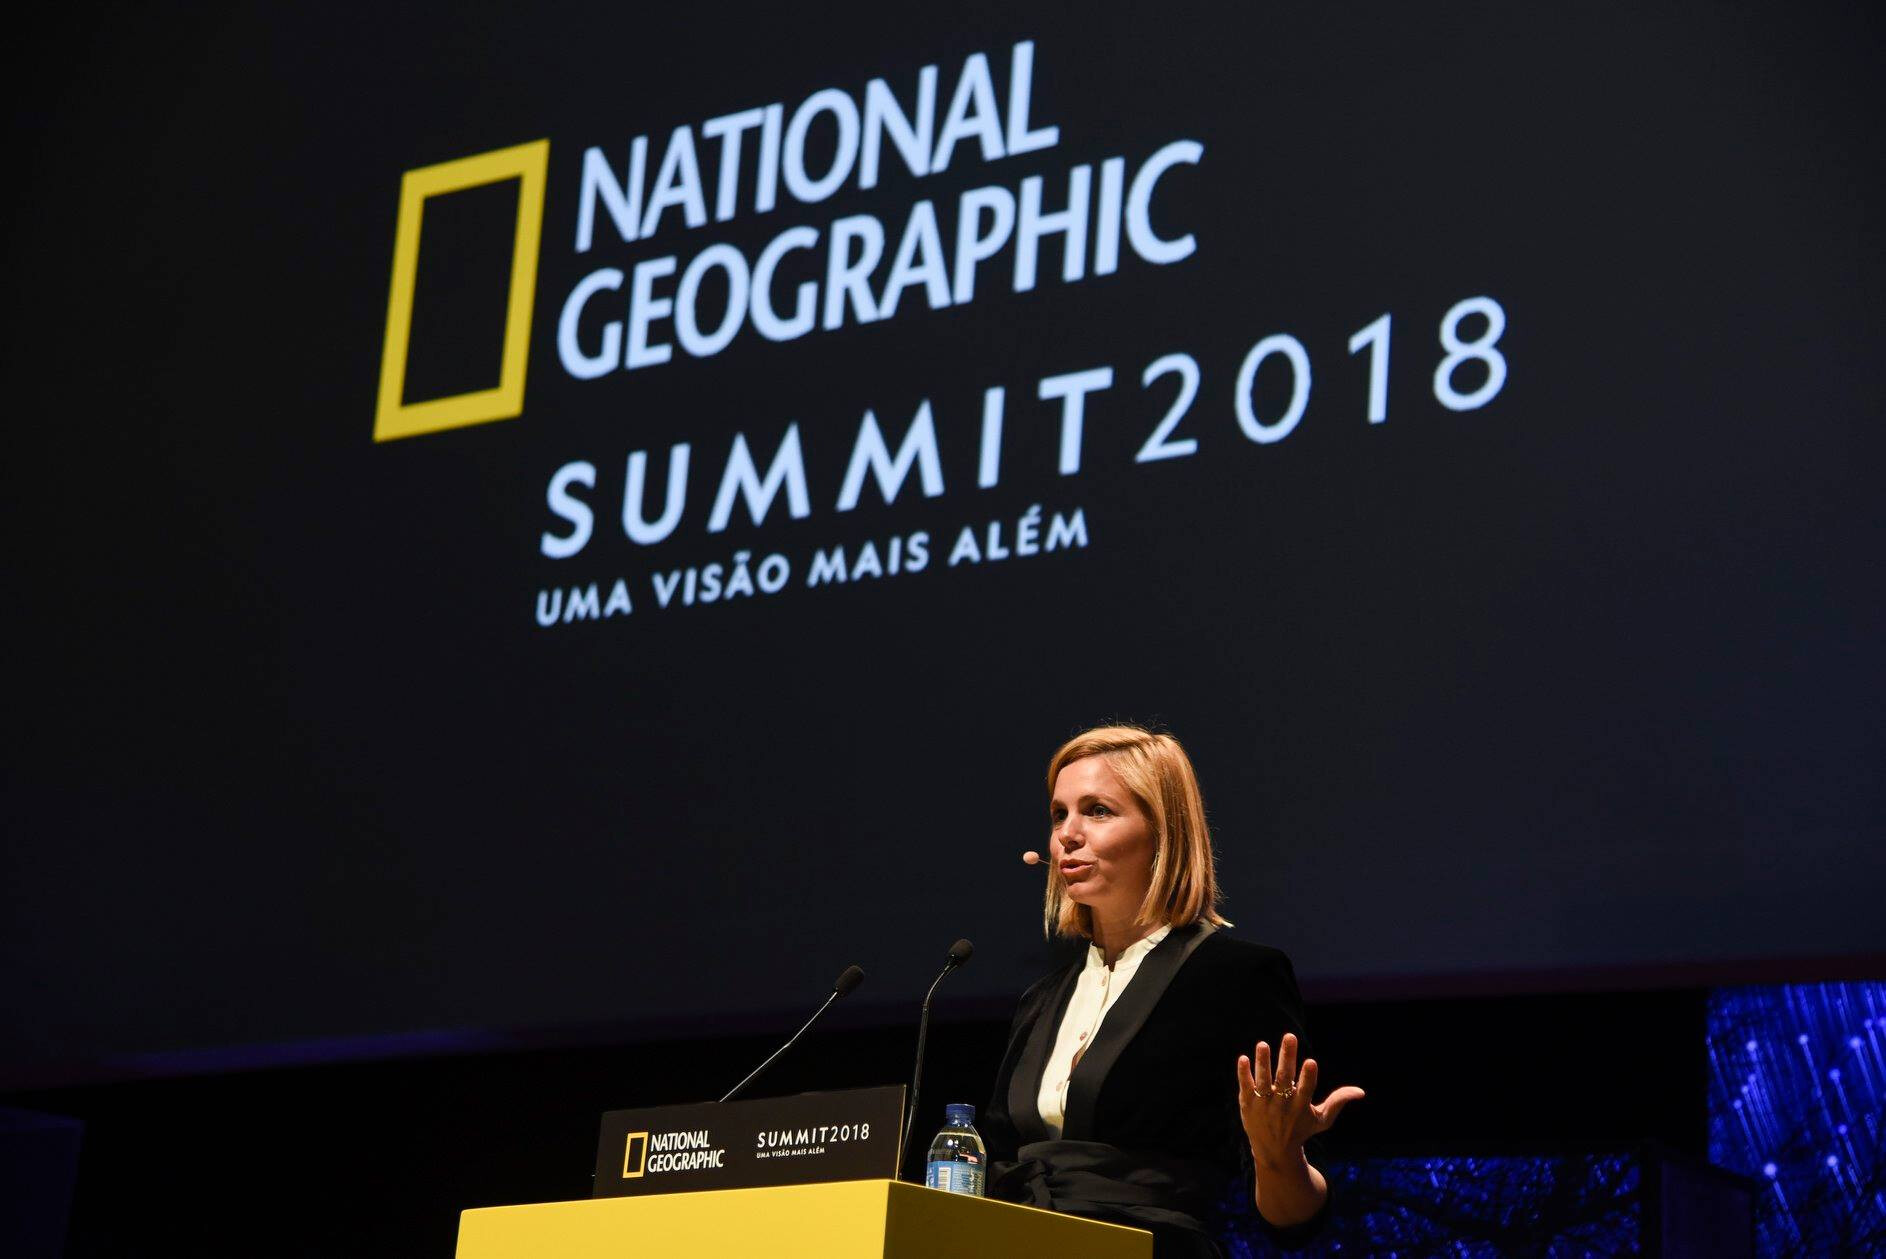 NATIONAL GEOGRAPHIC SUMMIT 2018